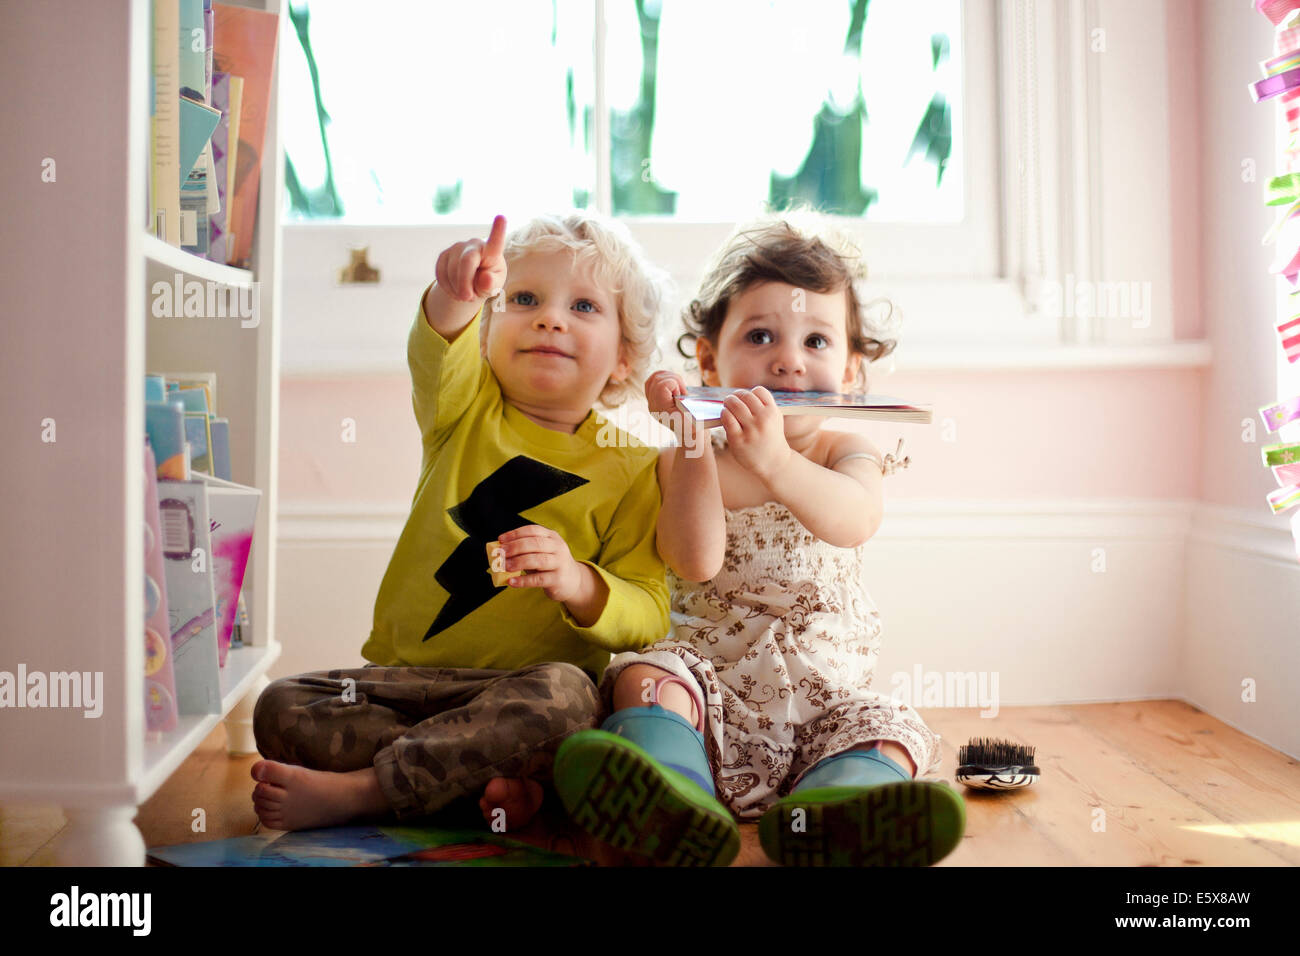 Female and male toddler friends pointing and looking up Stock Photo